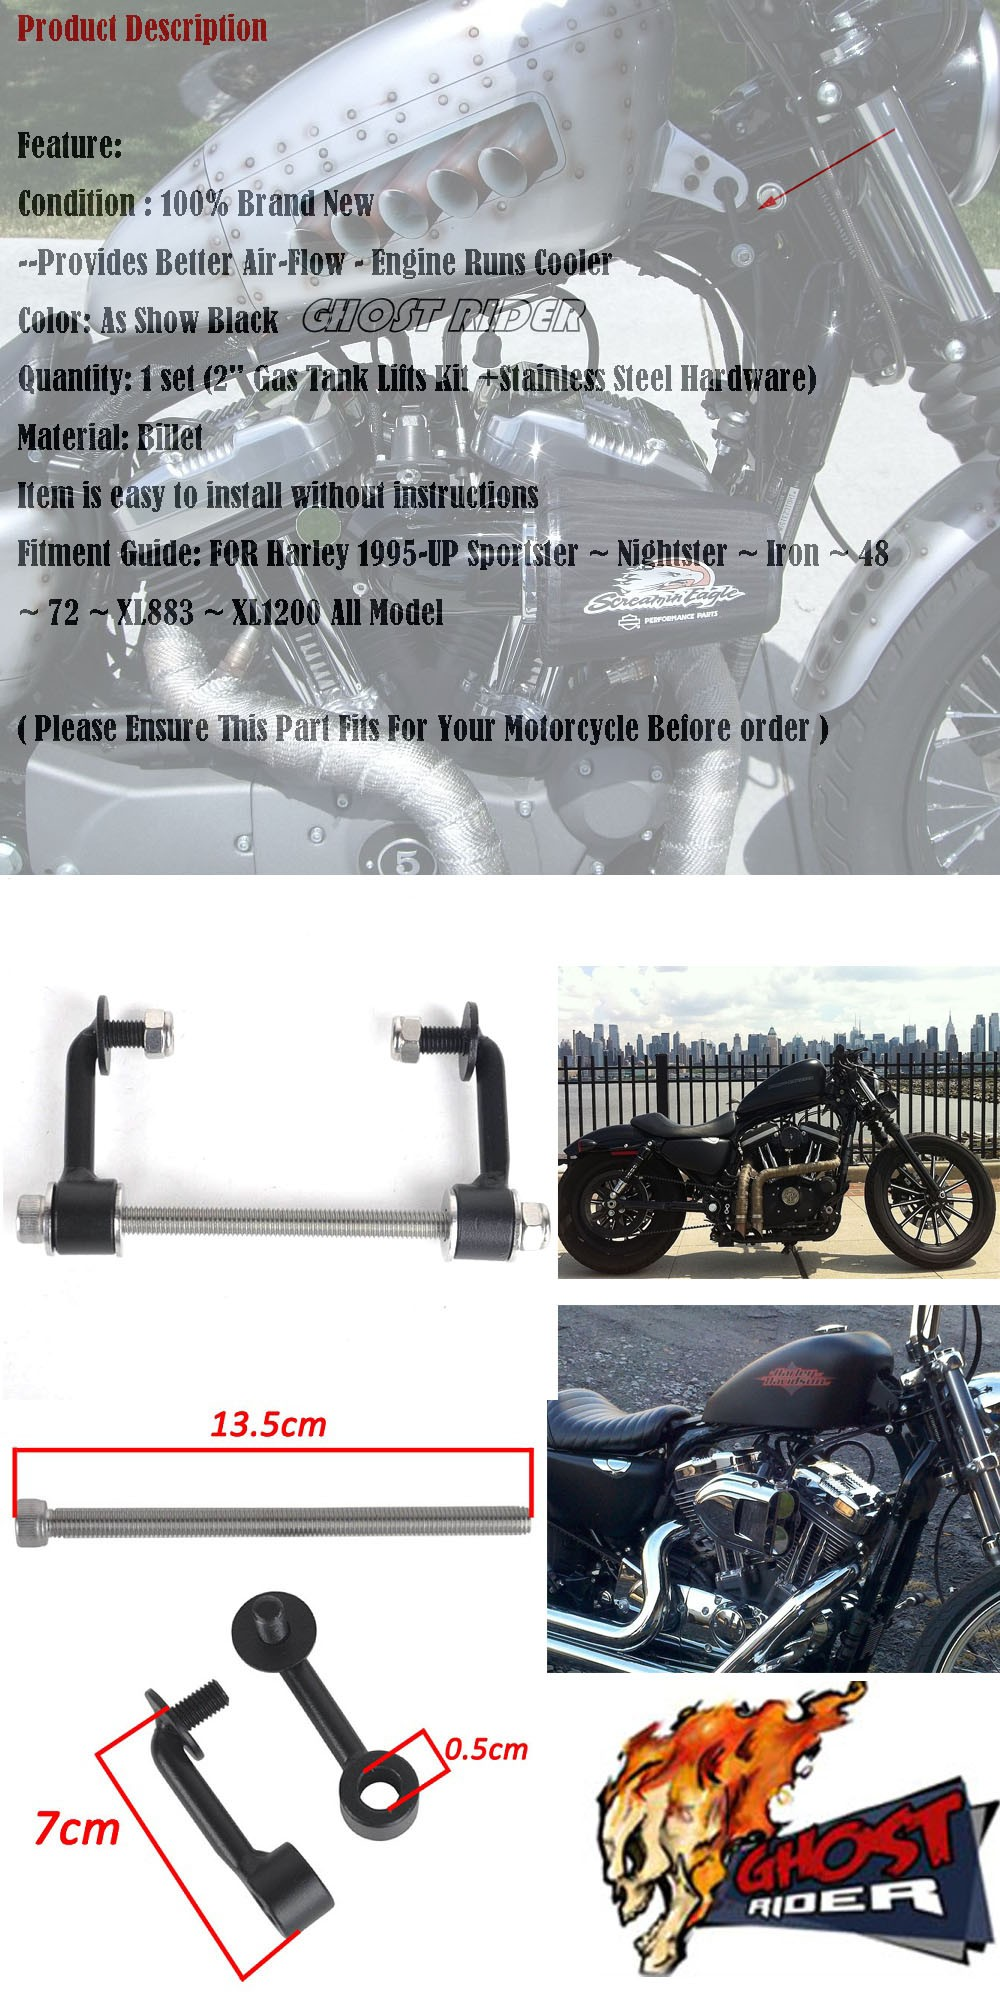 Motorcycle Billet 2 Gas Tank Lifts Kit Fits For Harley Sportster 2000 Xl 883 Wiring Harness The And Buell Aeproductgetsubject